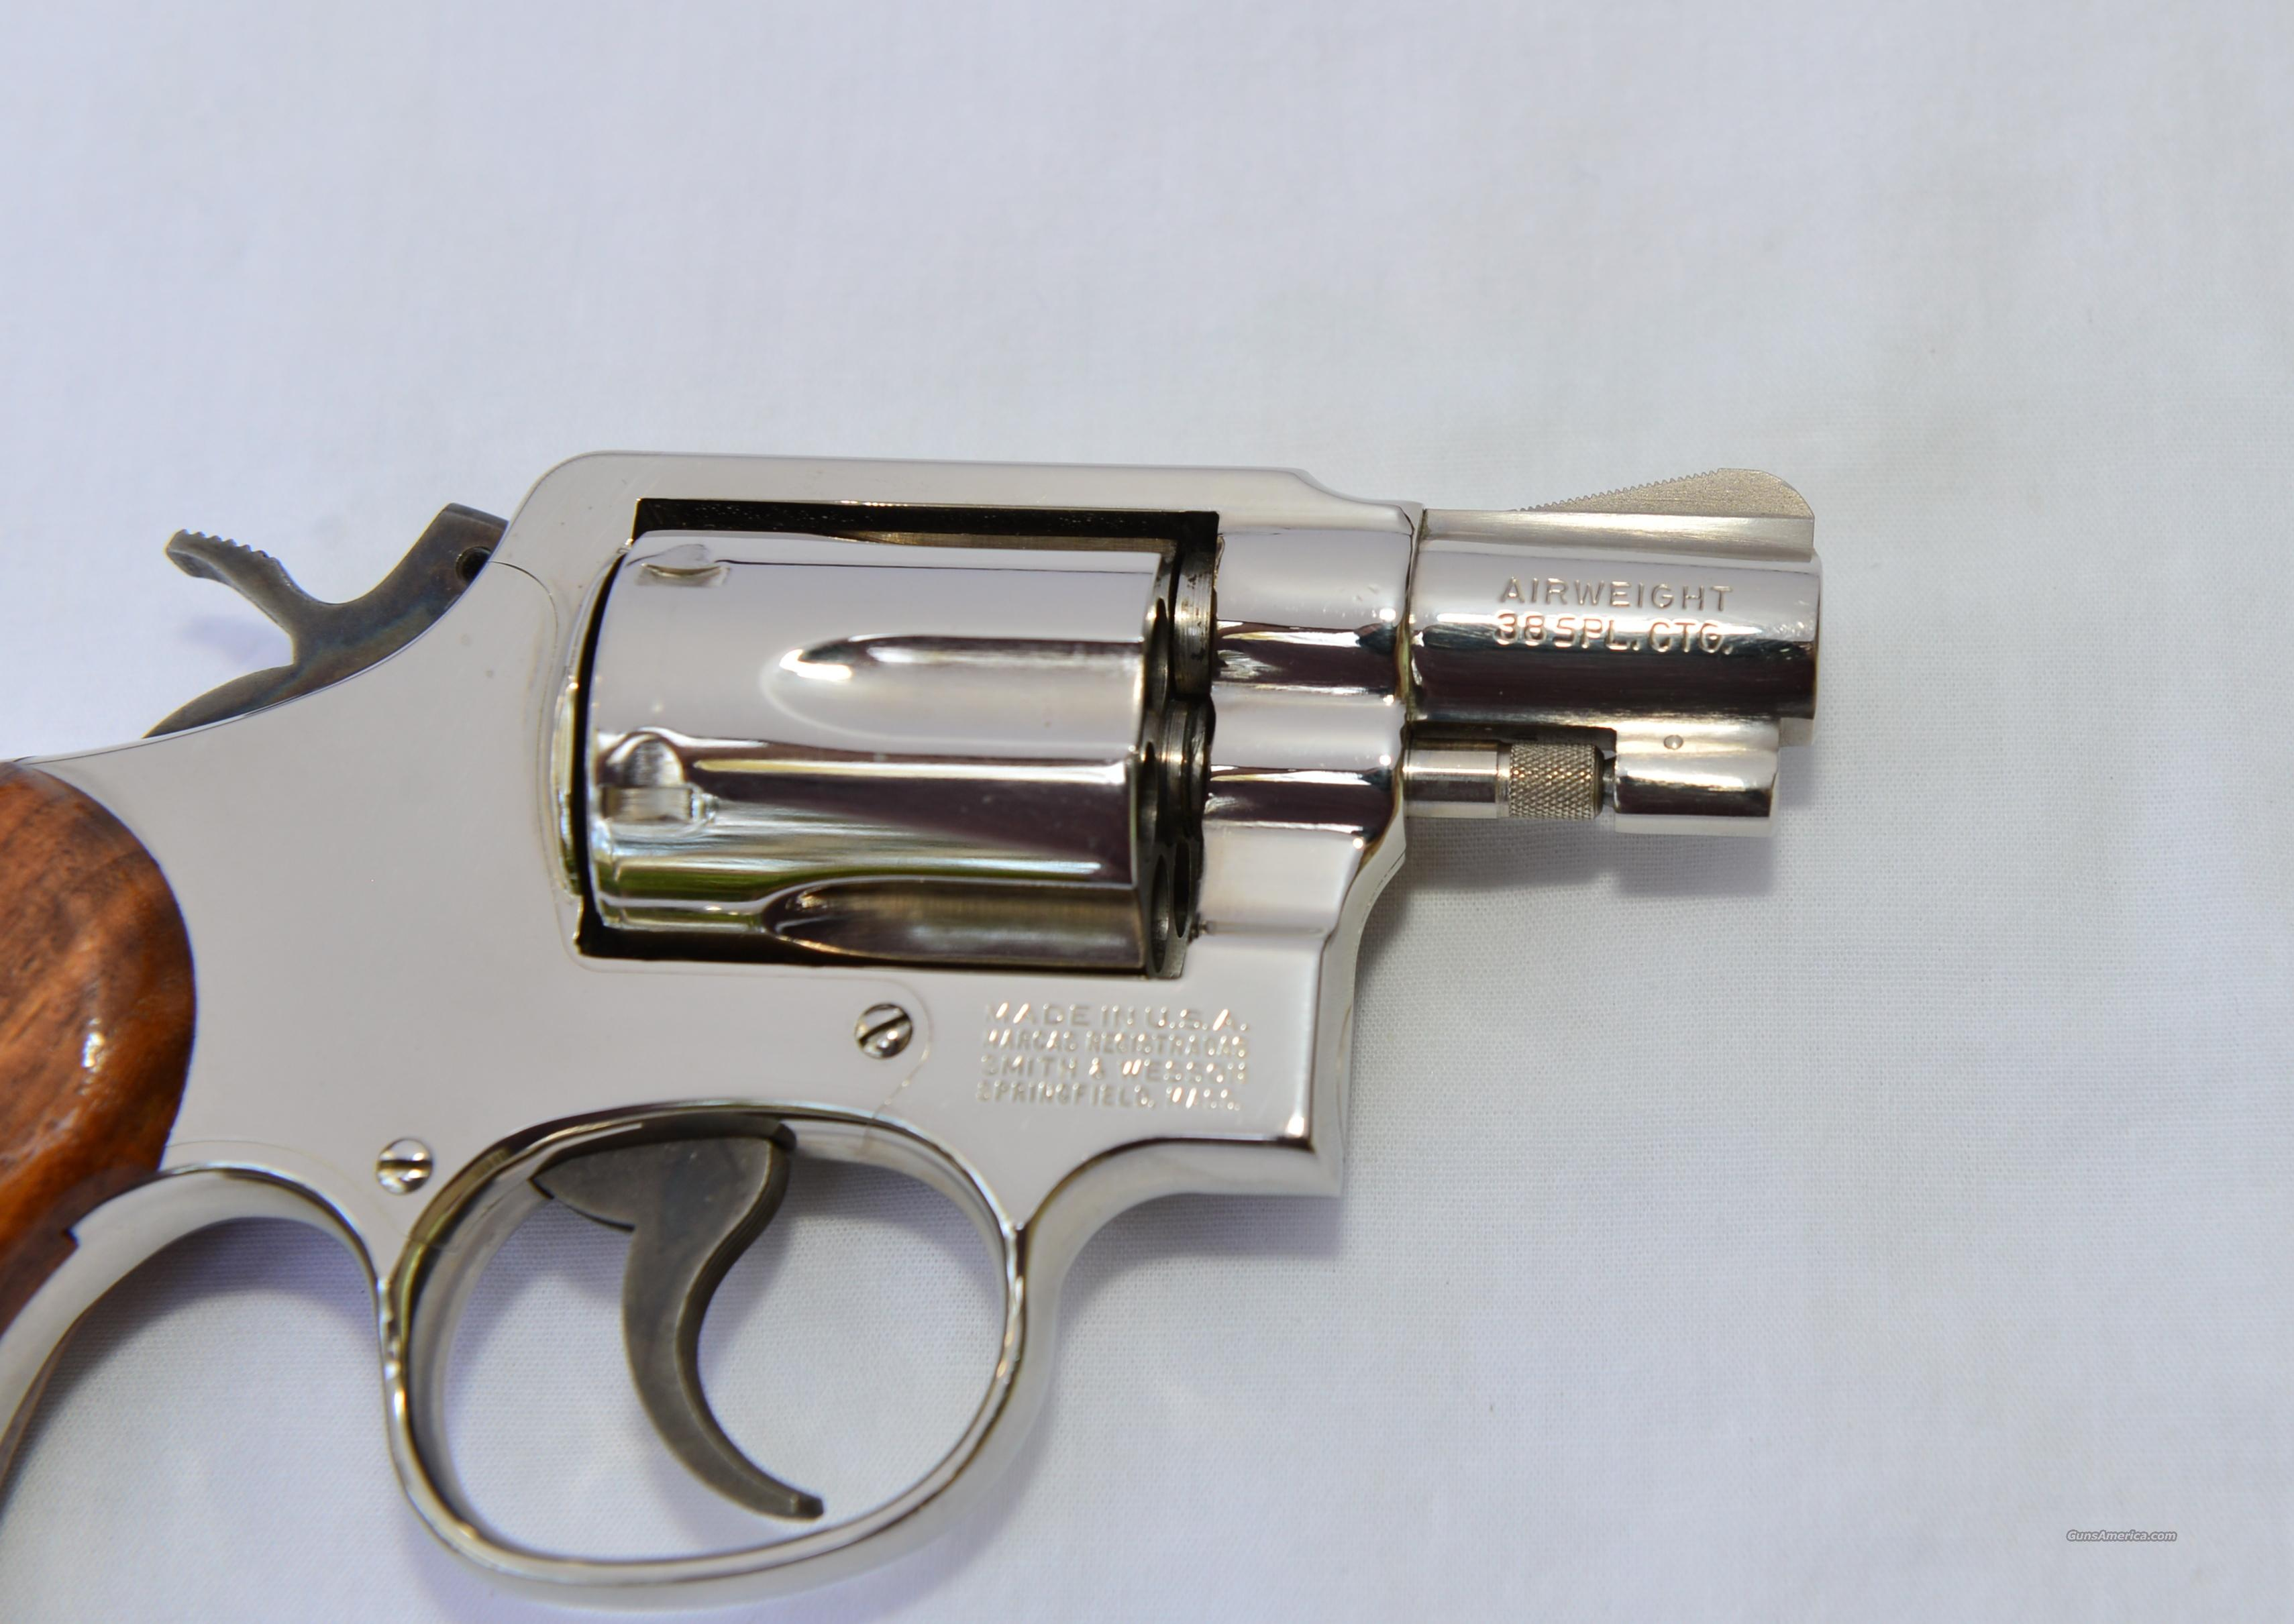 SMITH & WESSON MODEL 12 NICKEL .38 SPECIAL  Guns > Pistols > Smith & Wesson Pistols - Replica